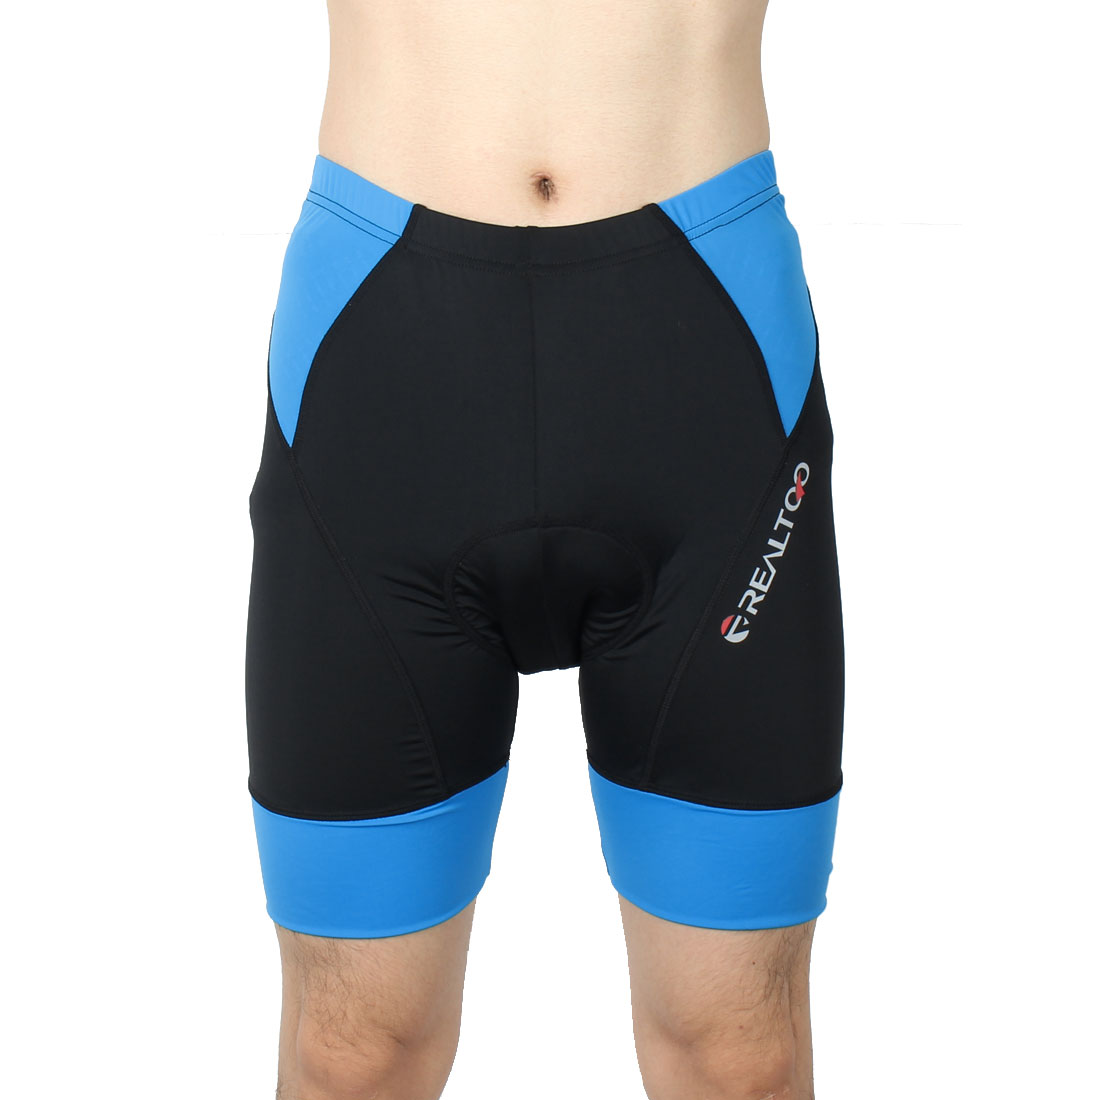 Men Summer Sports Bicycle Underwear 3D Padded Breathable Cycling Shorts Black Blue L (W 36)